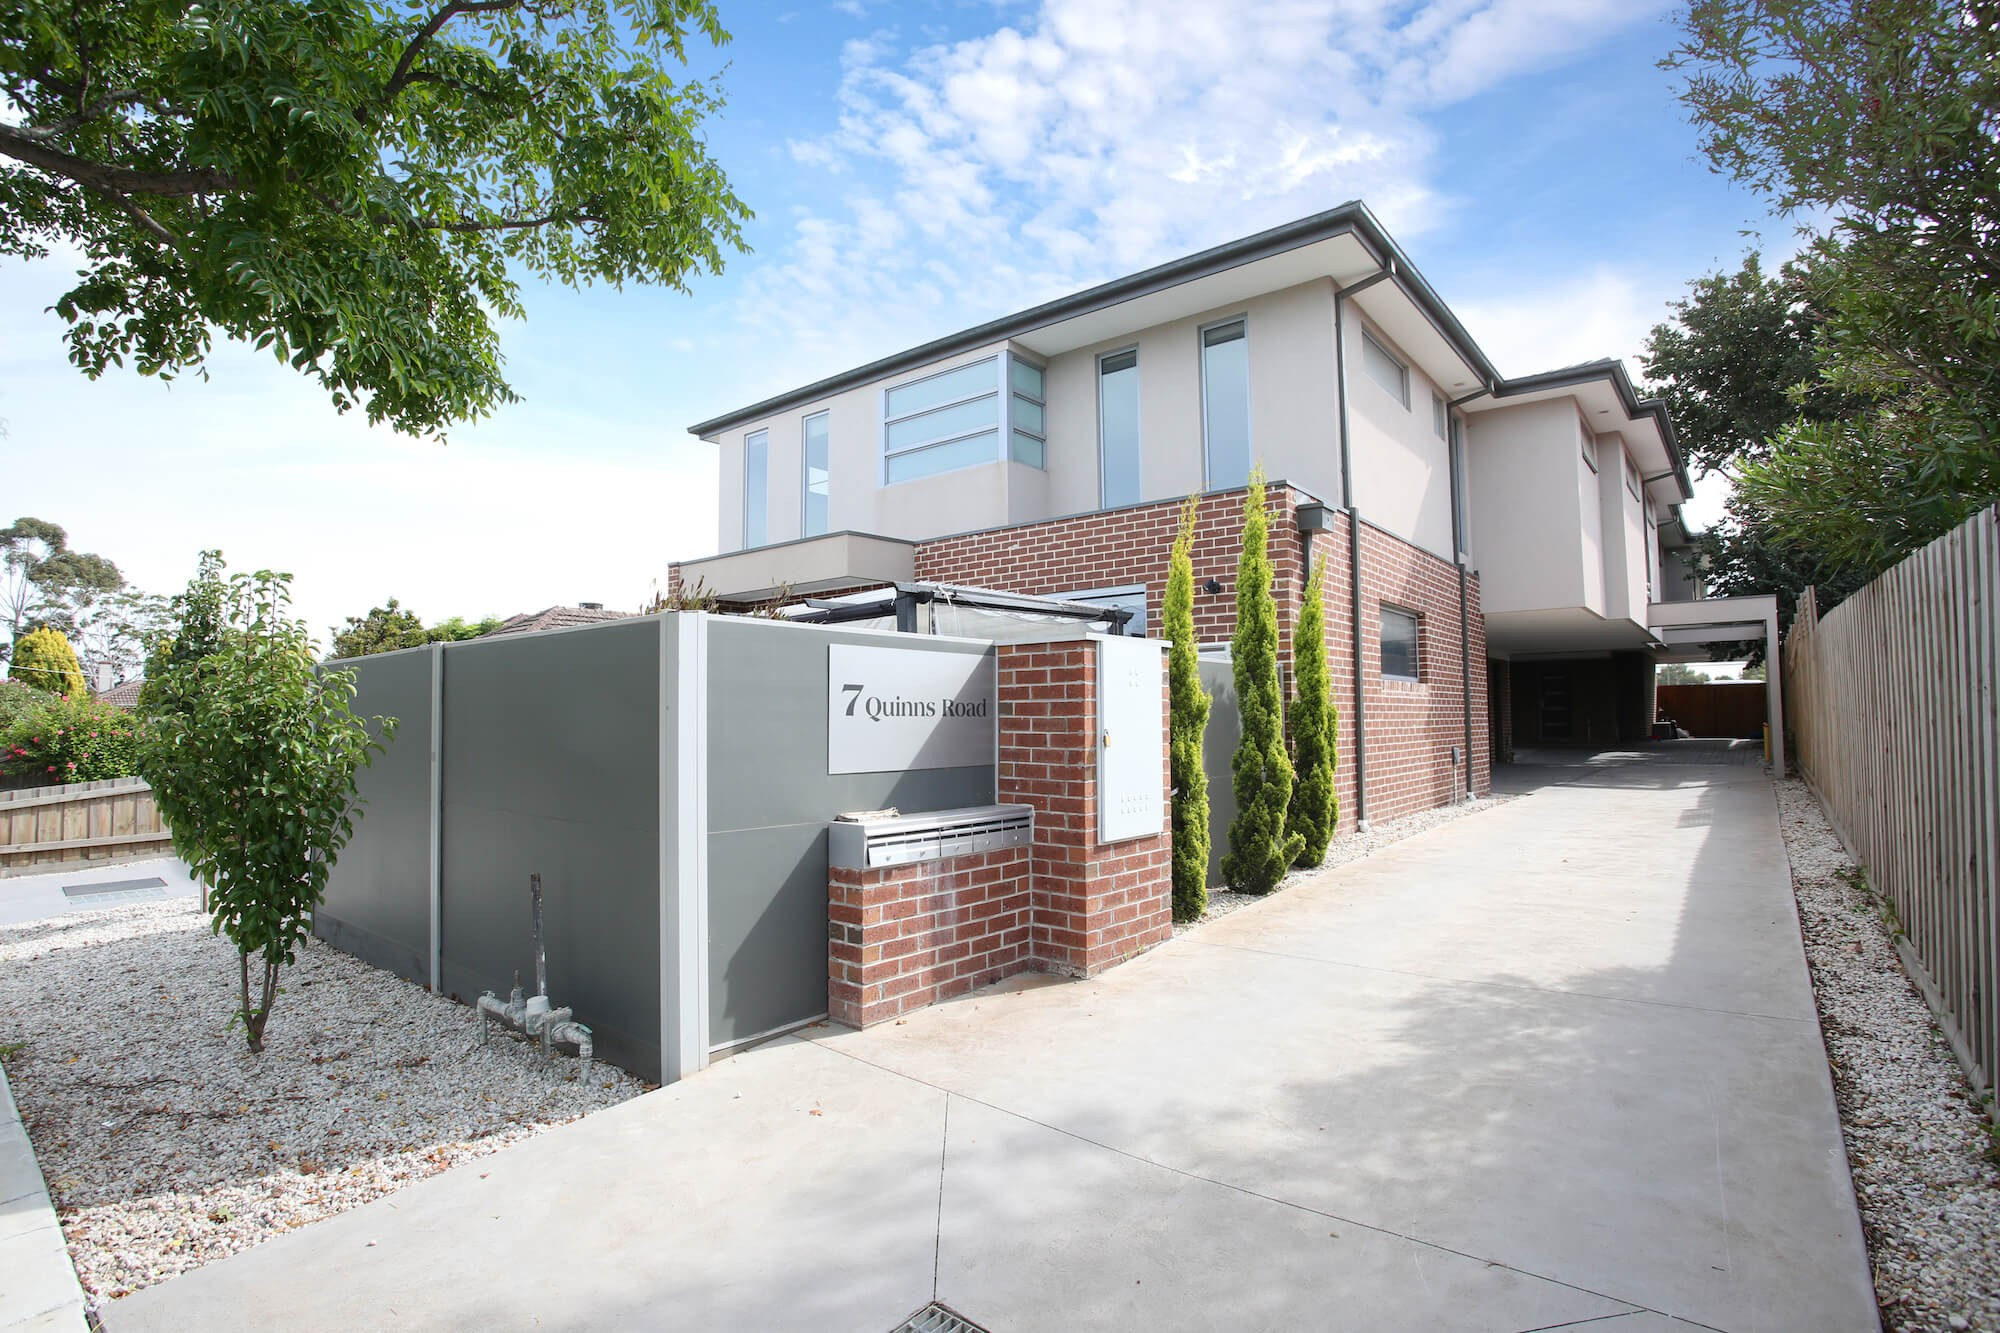 Property for rent 2/7 Quinns Rd Bentleigh East VIC 3165